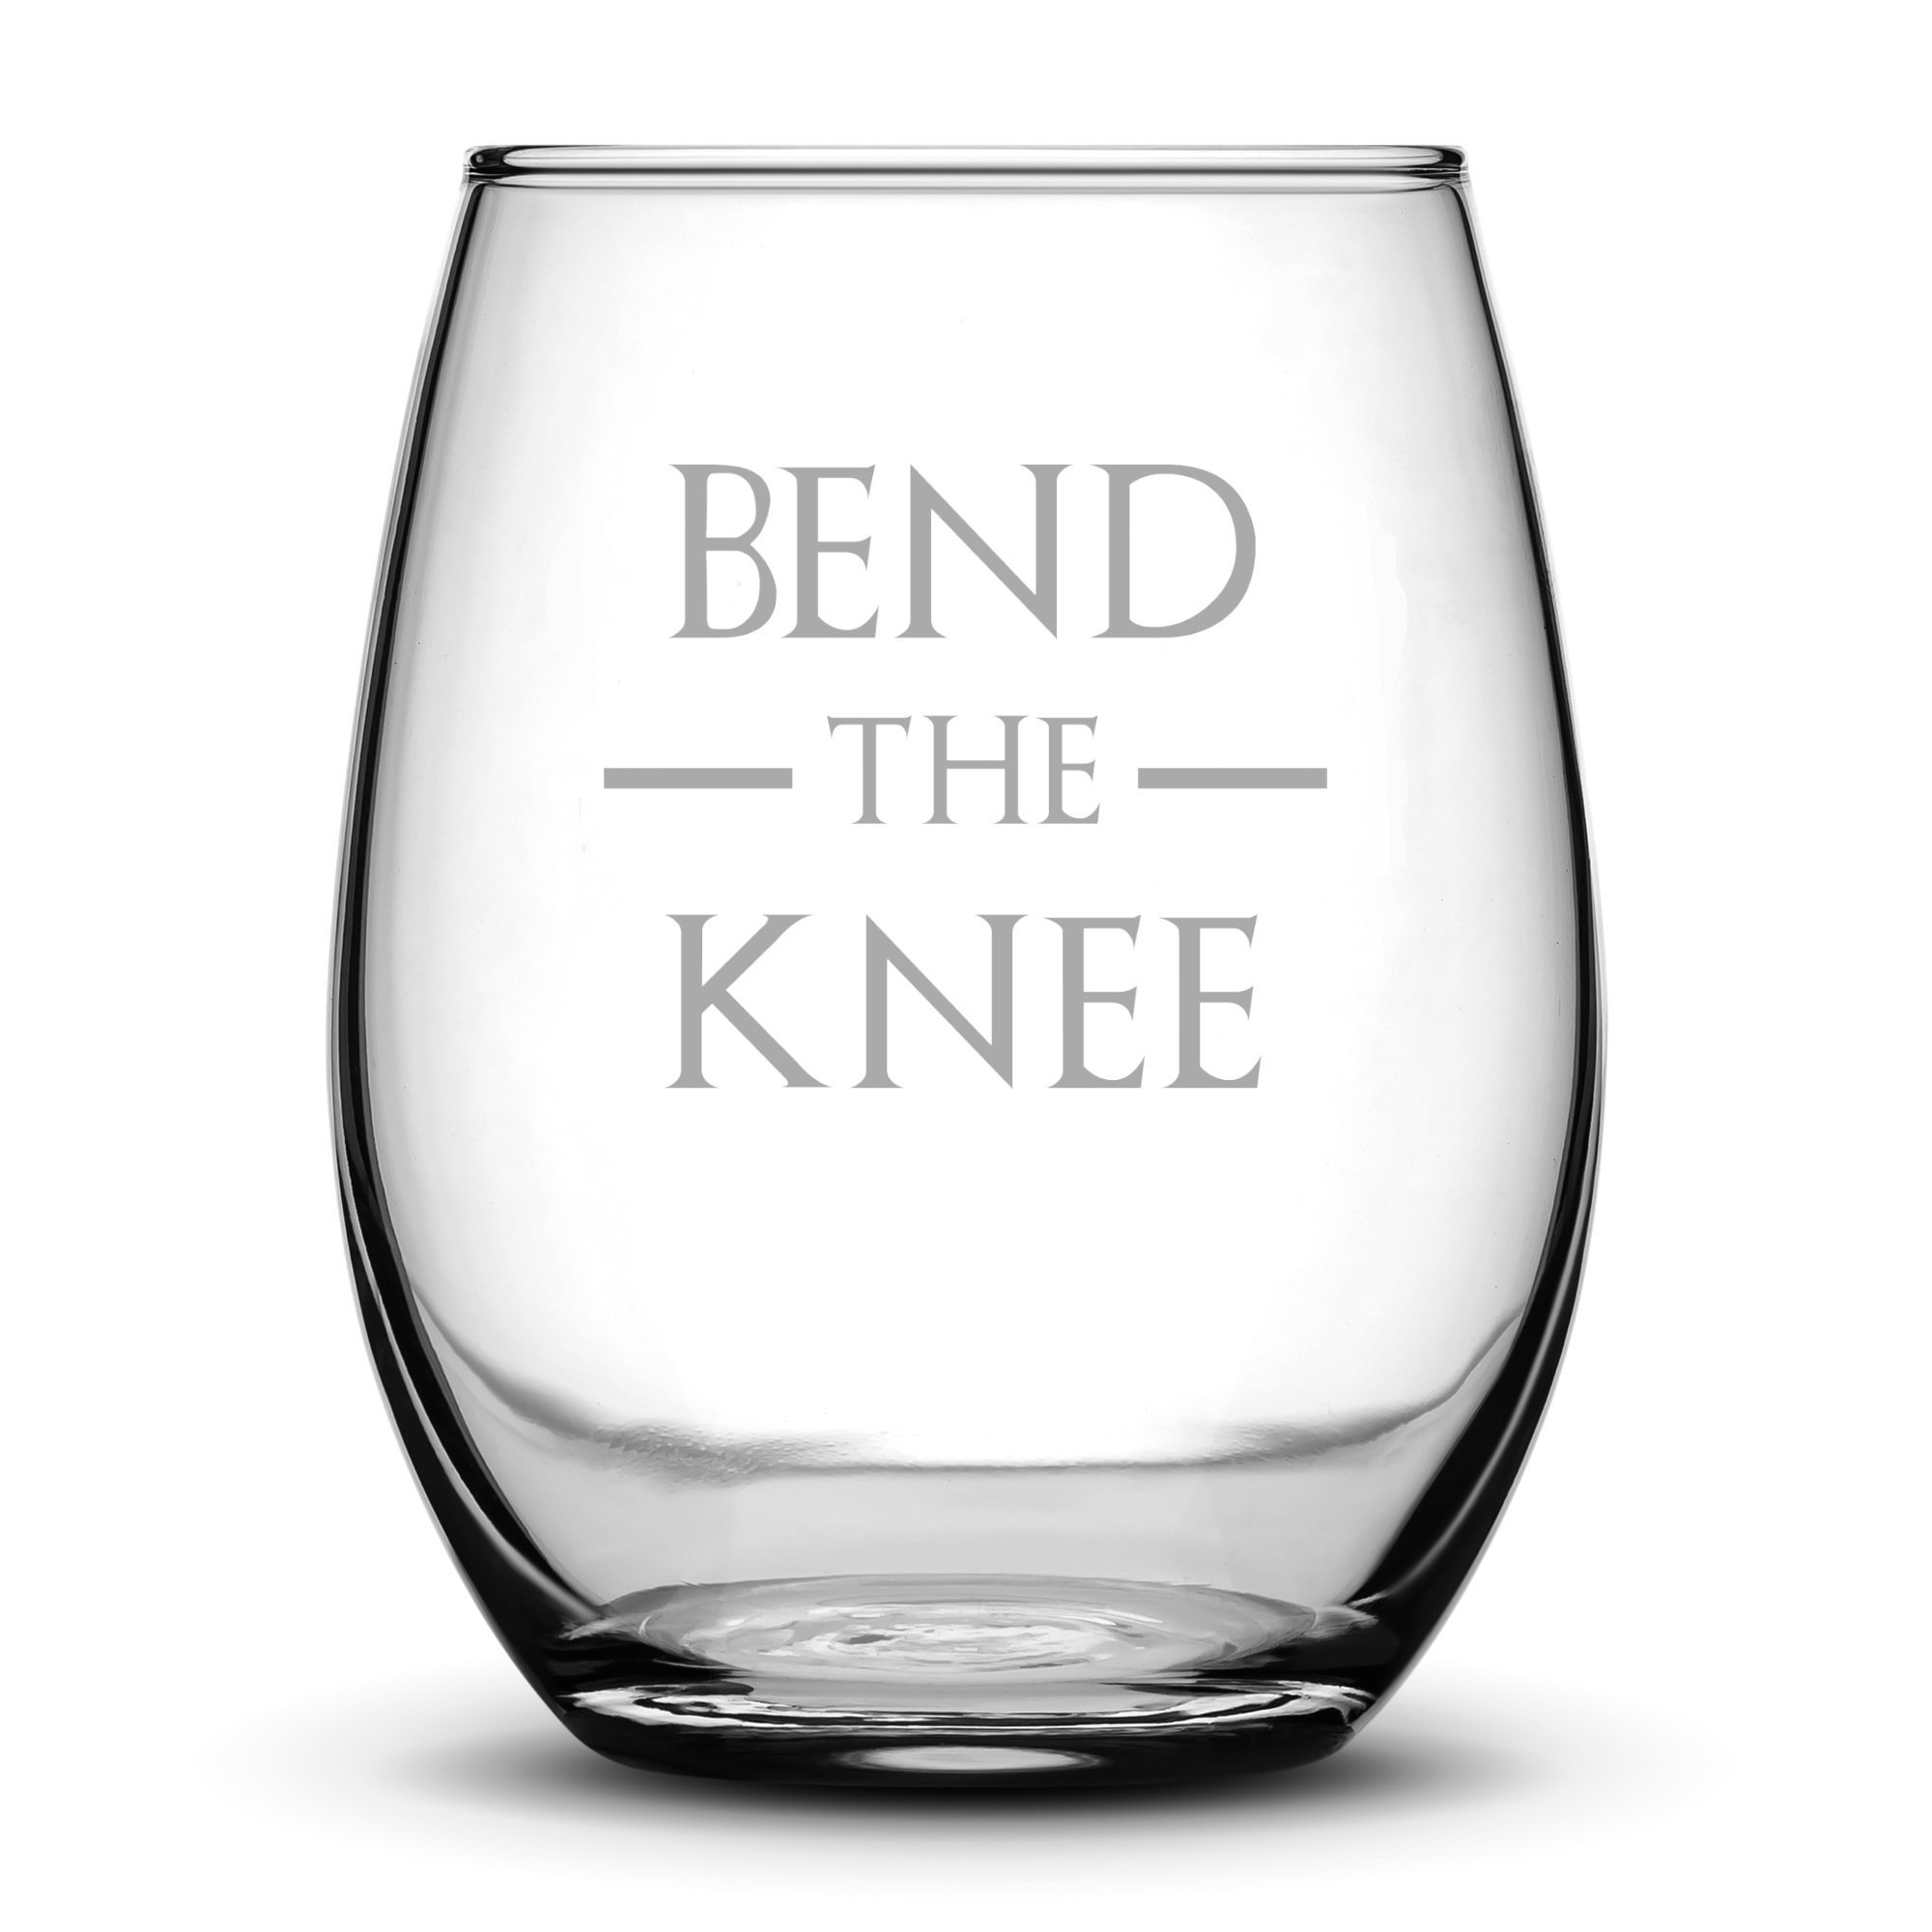 Premium Game of Thrones Wine Glass, Bend the Knee, Hand Etched 14.2 oz Stemless Gifts, Made in USA, Sand Carved by Integrity Bottles